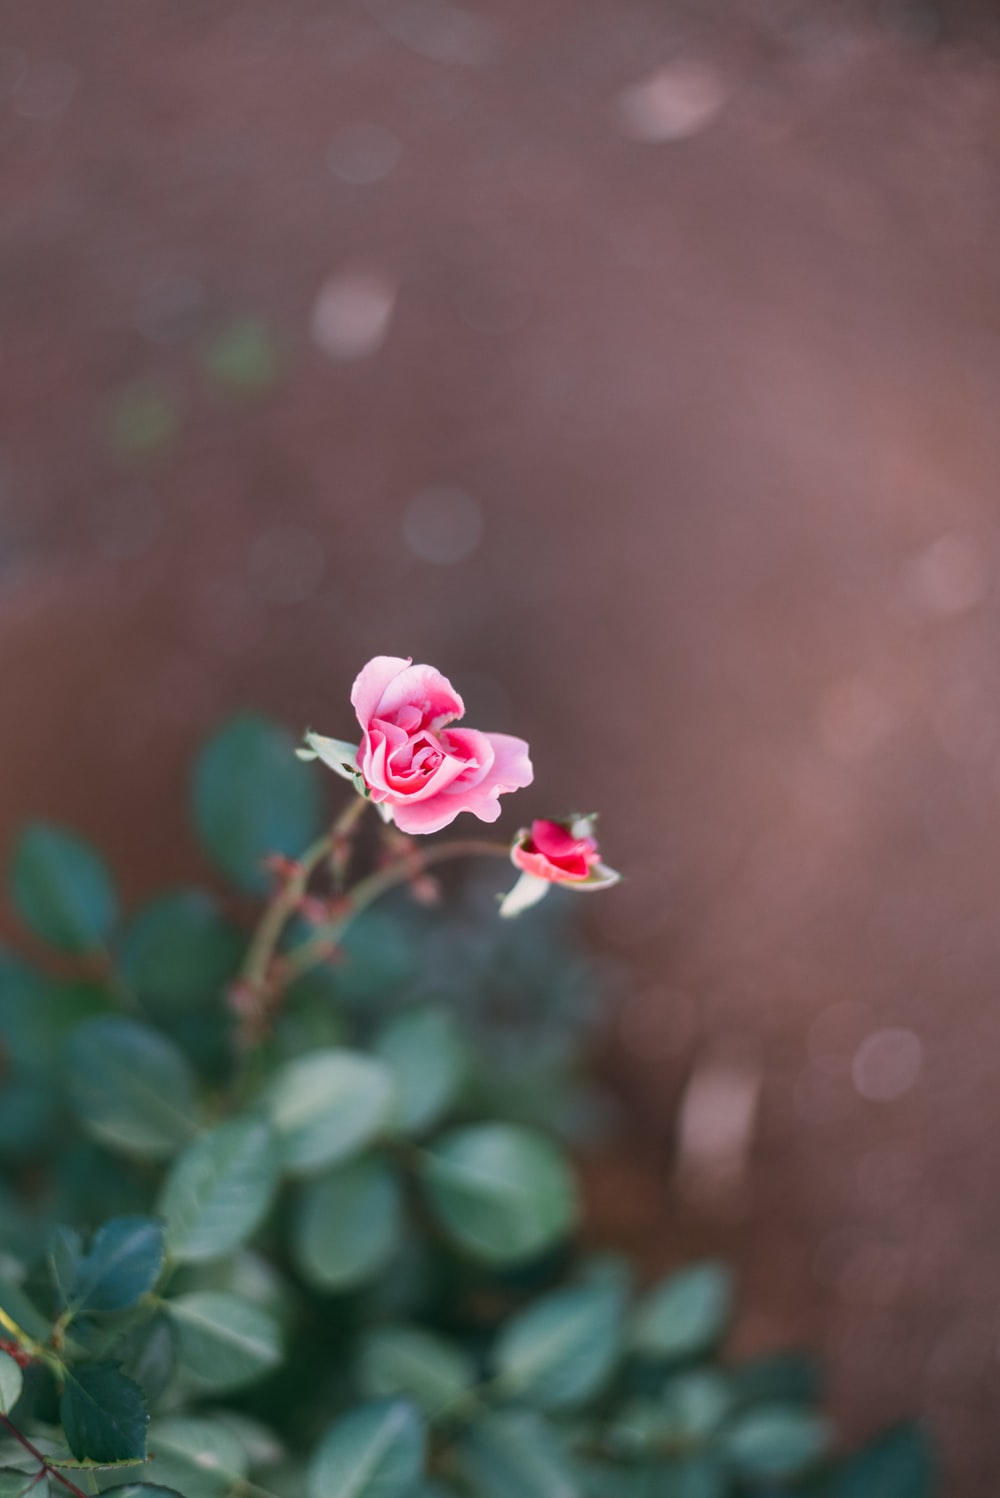 pink and white flower in selective-focus photography